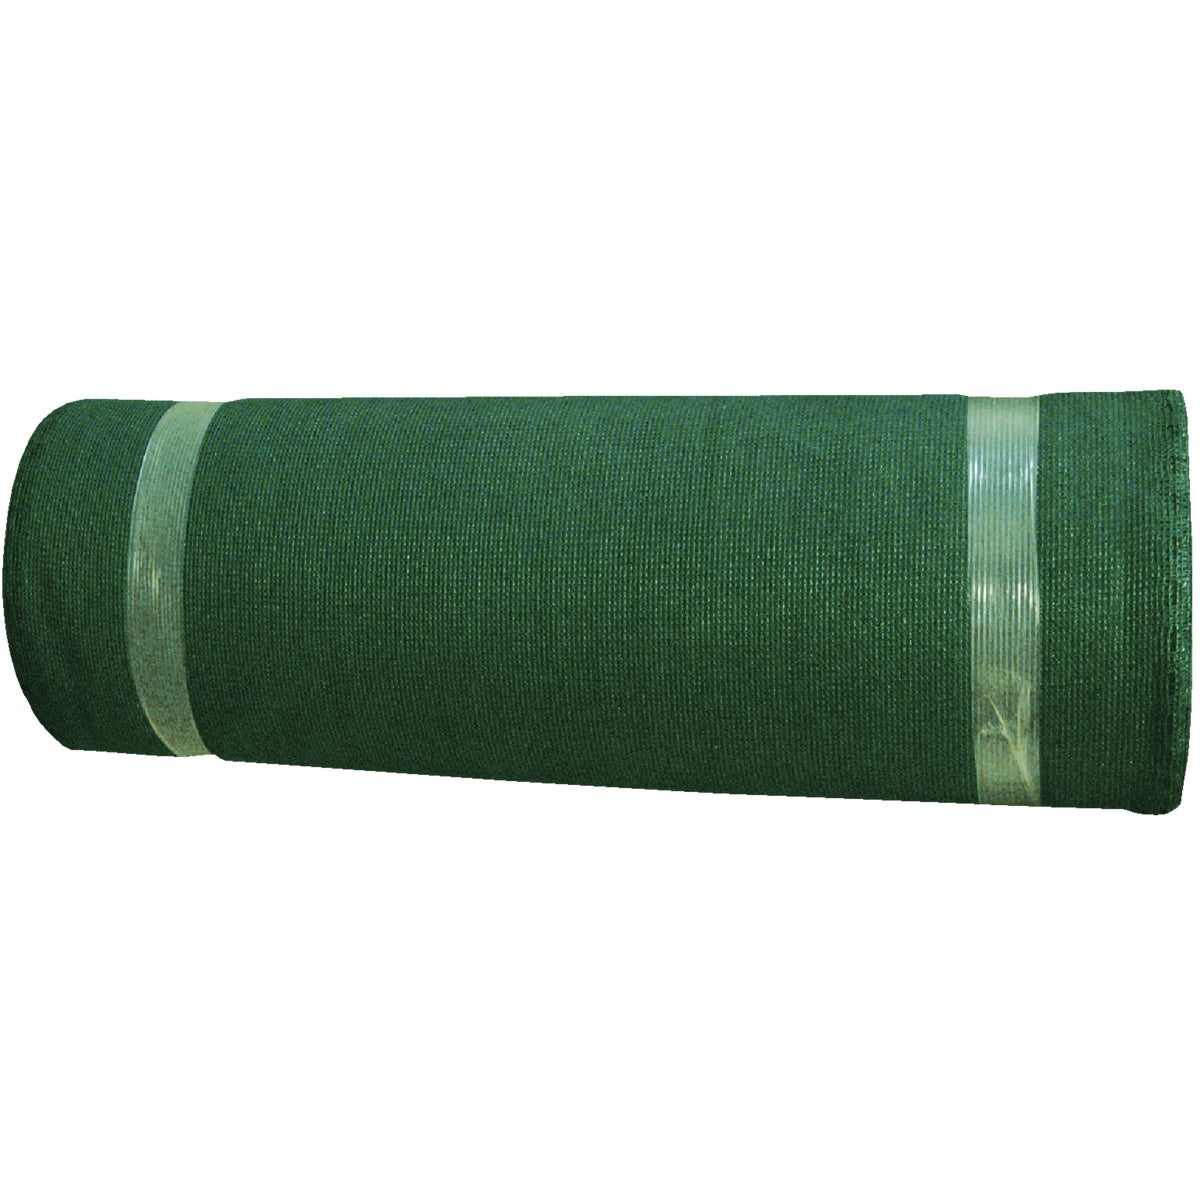 6X100 50% UV GREEN SHADE - 300364 by Gale Pacific Coolaro